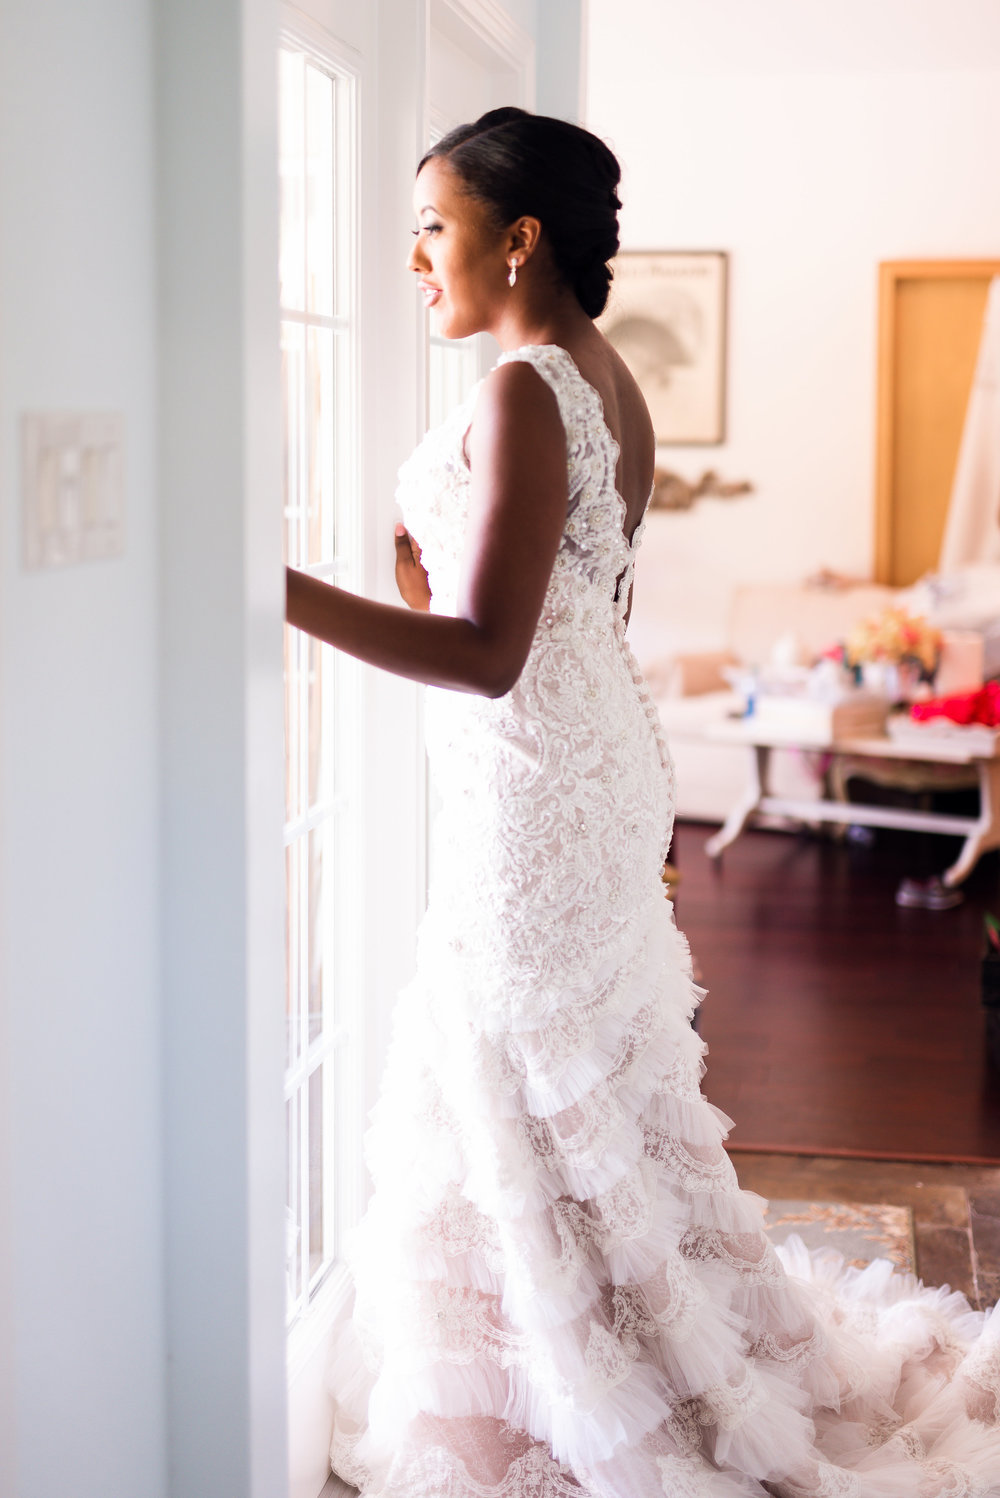 TC-Jessica-Garr-Pharris-Photography-Real-Wedding-17.jpg